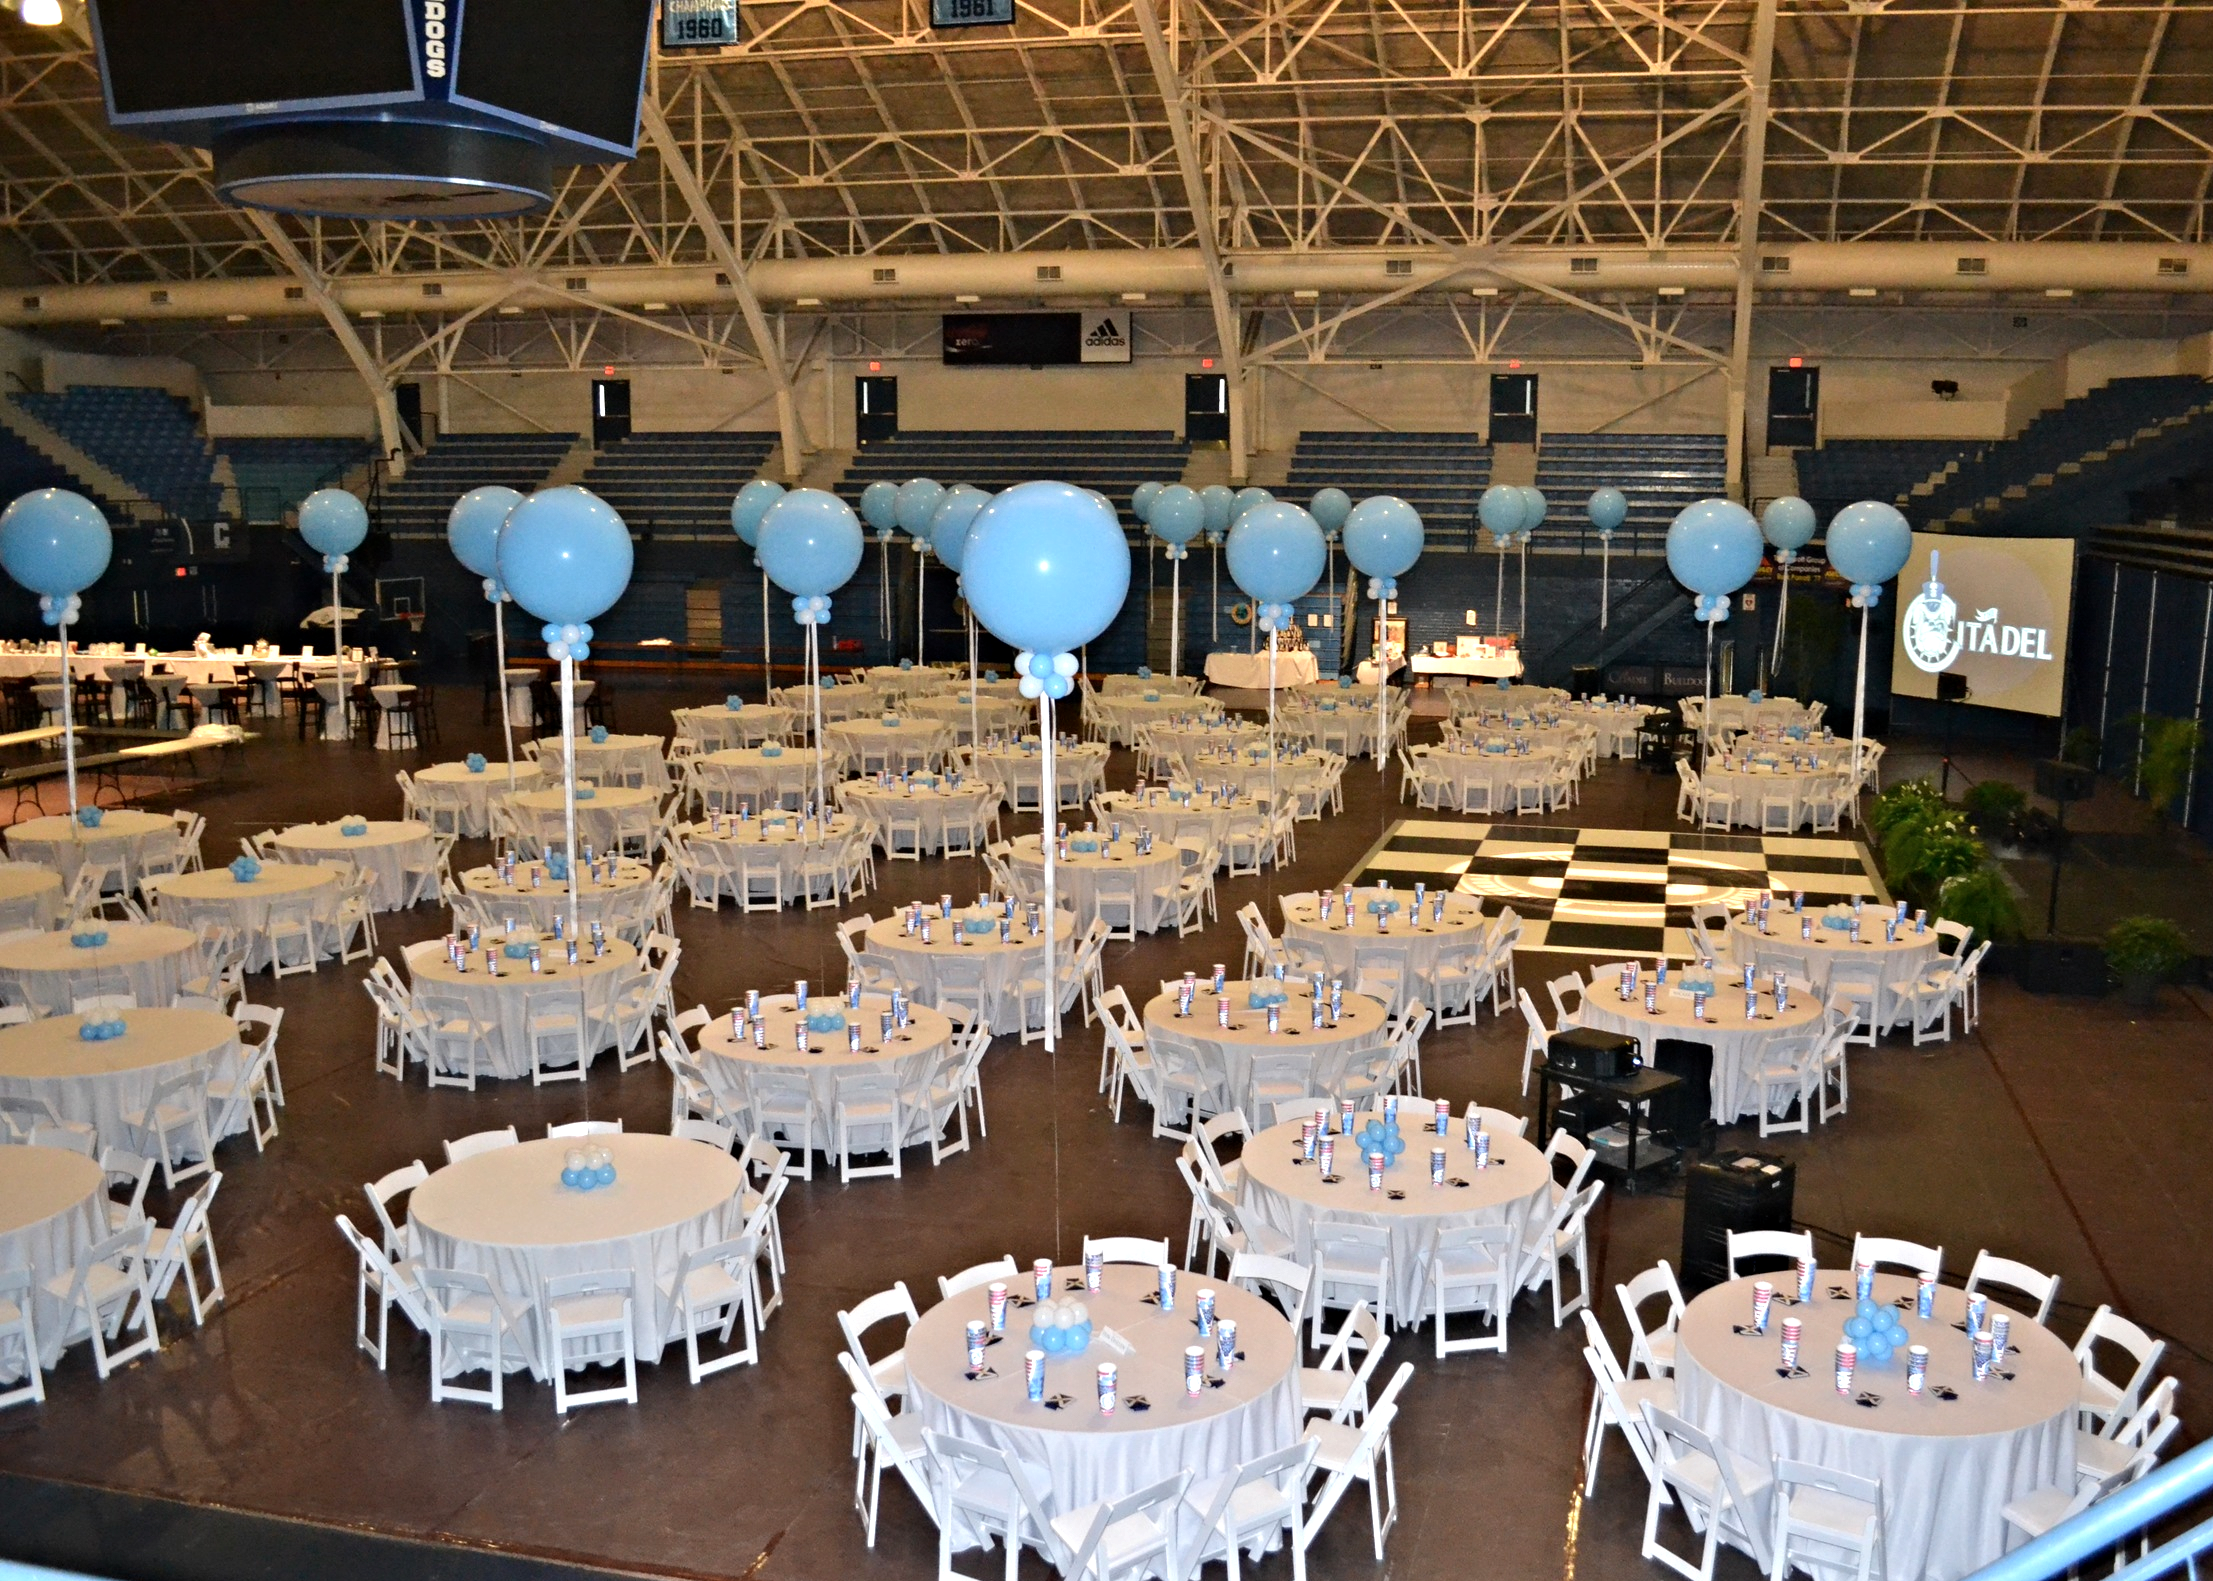 Jumbo Balloon Centerpieces